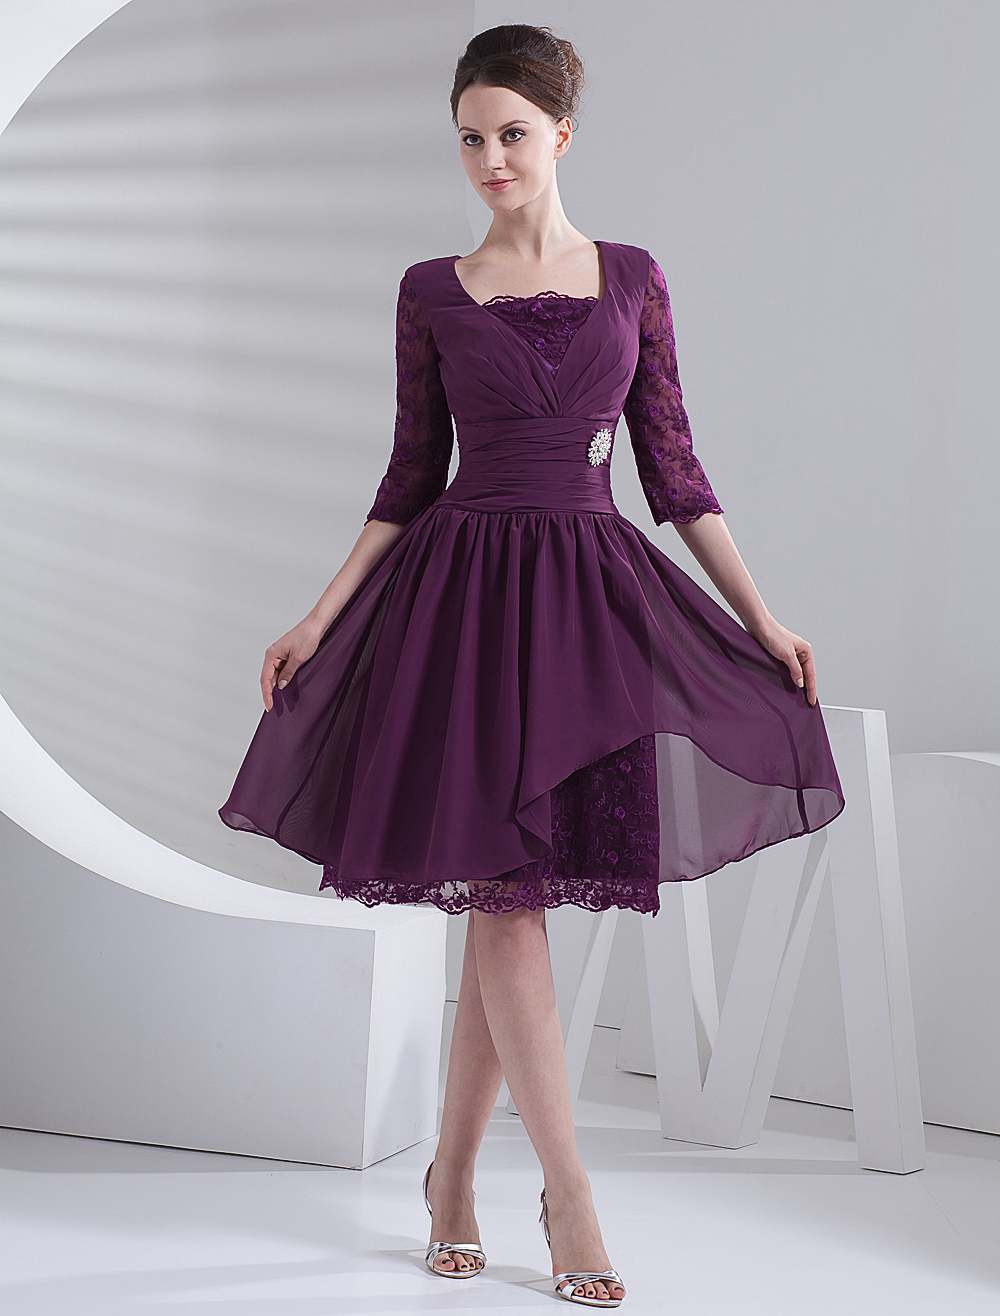 Short Purple Prom Dress Half Sleeves - Milanoo.com